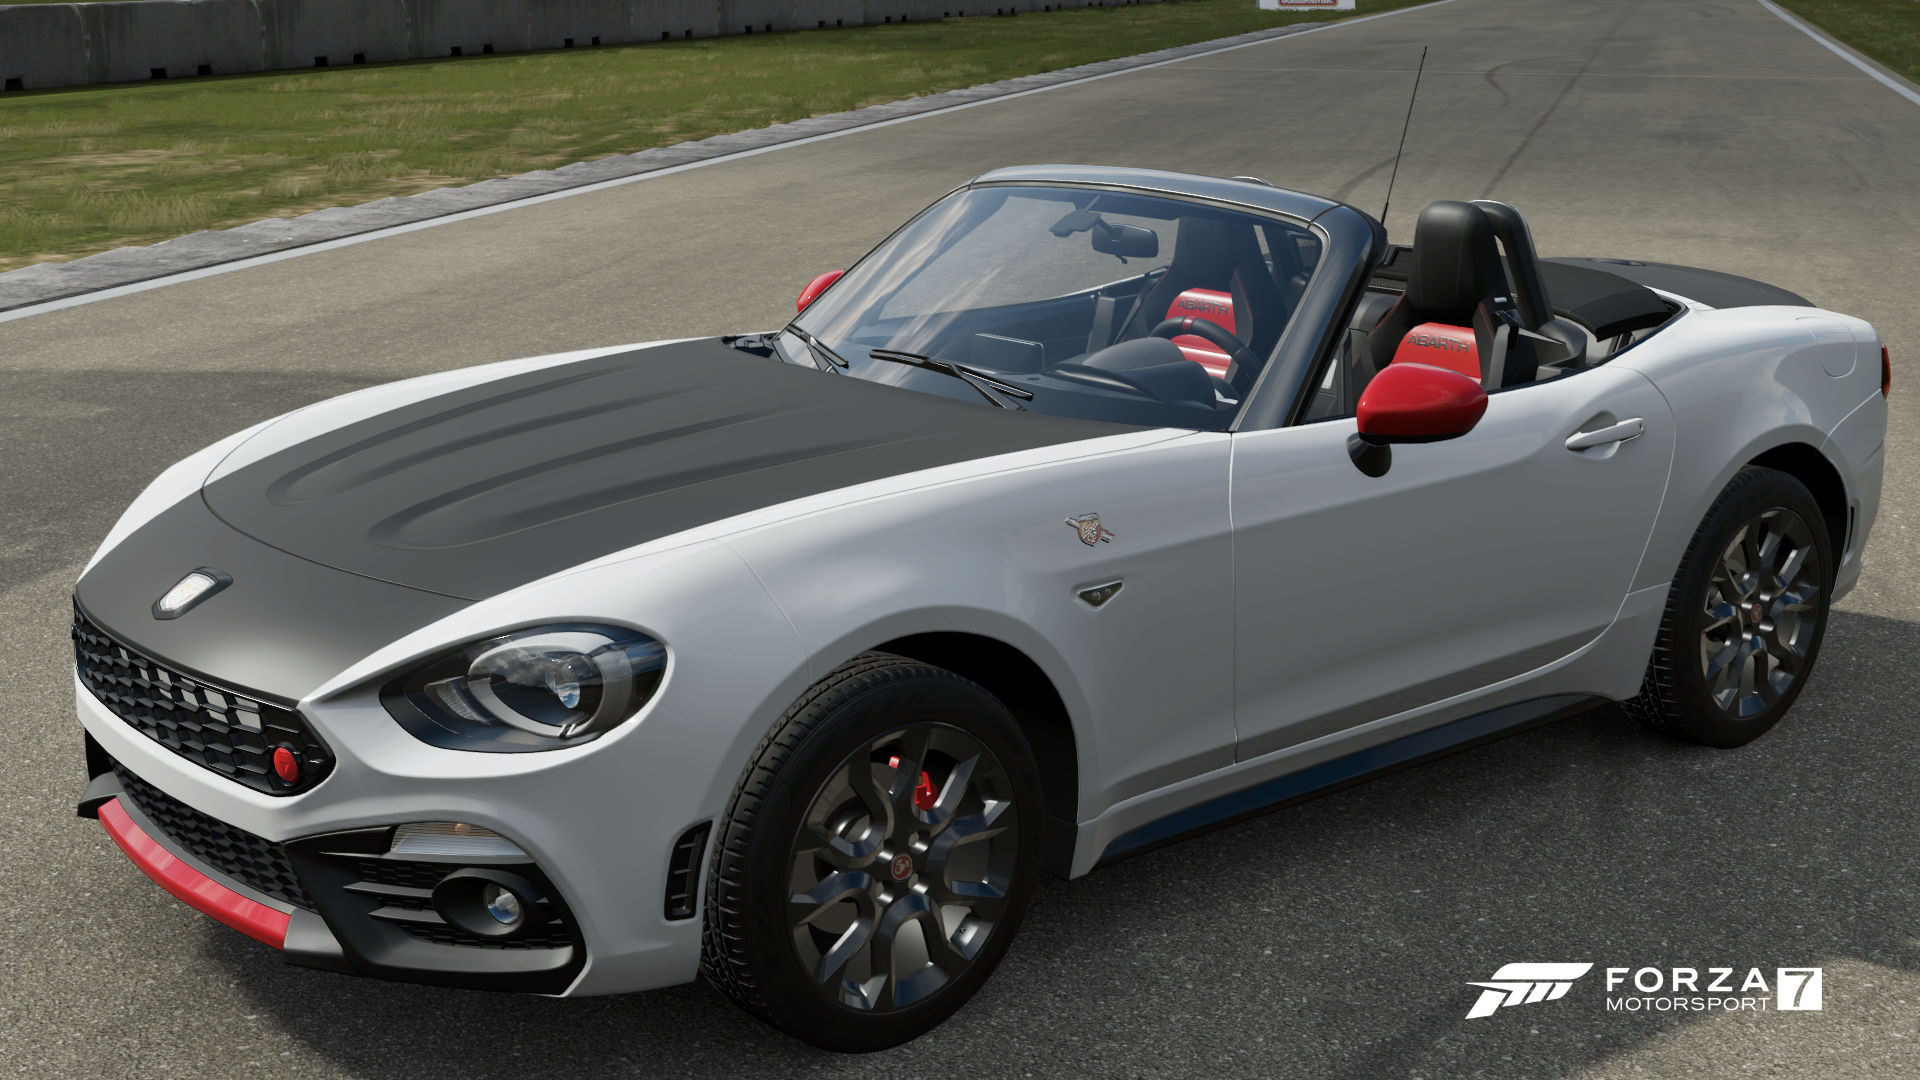 abarth 124 spider forza motorsport wiki fandom powered by wikia. Black Bedroom Furniture Sets. Home Design Ideas